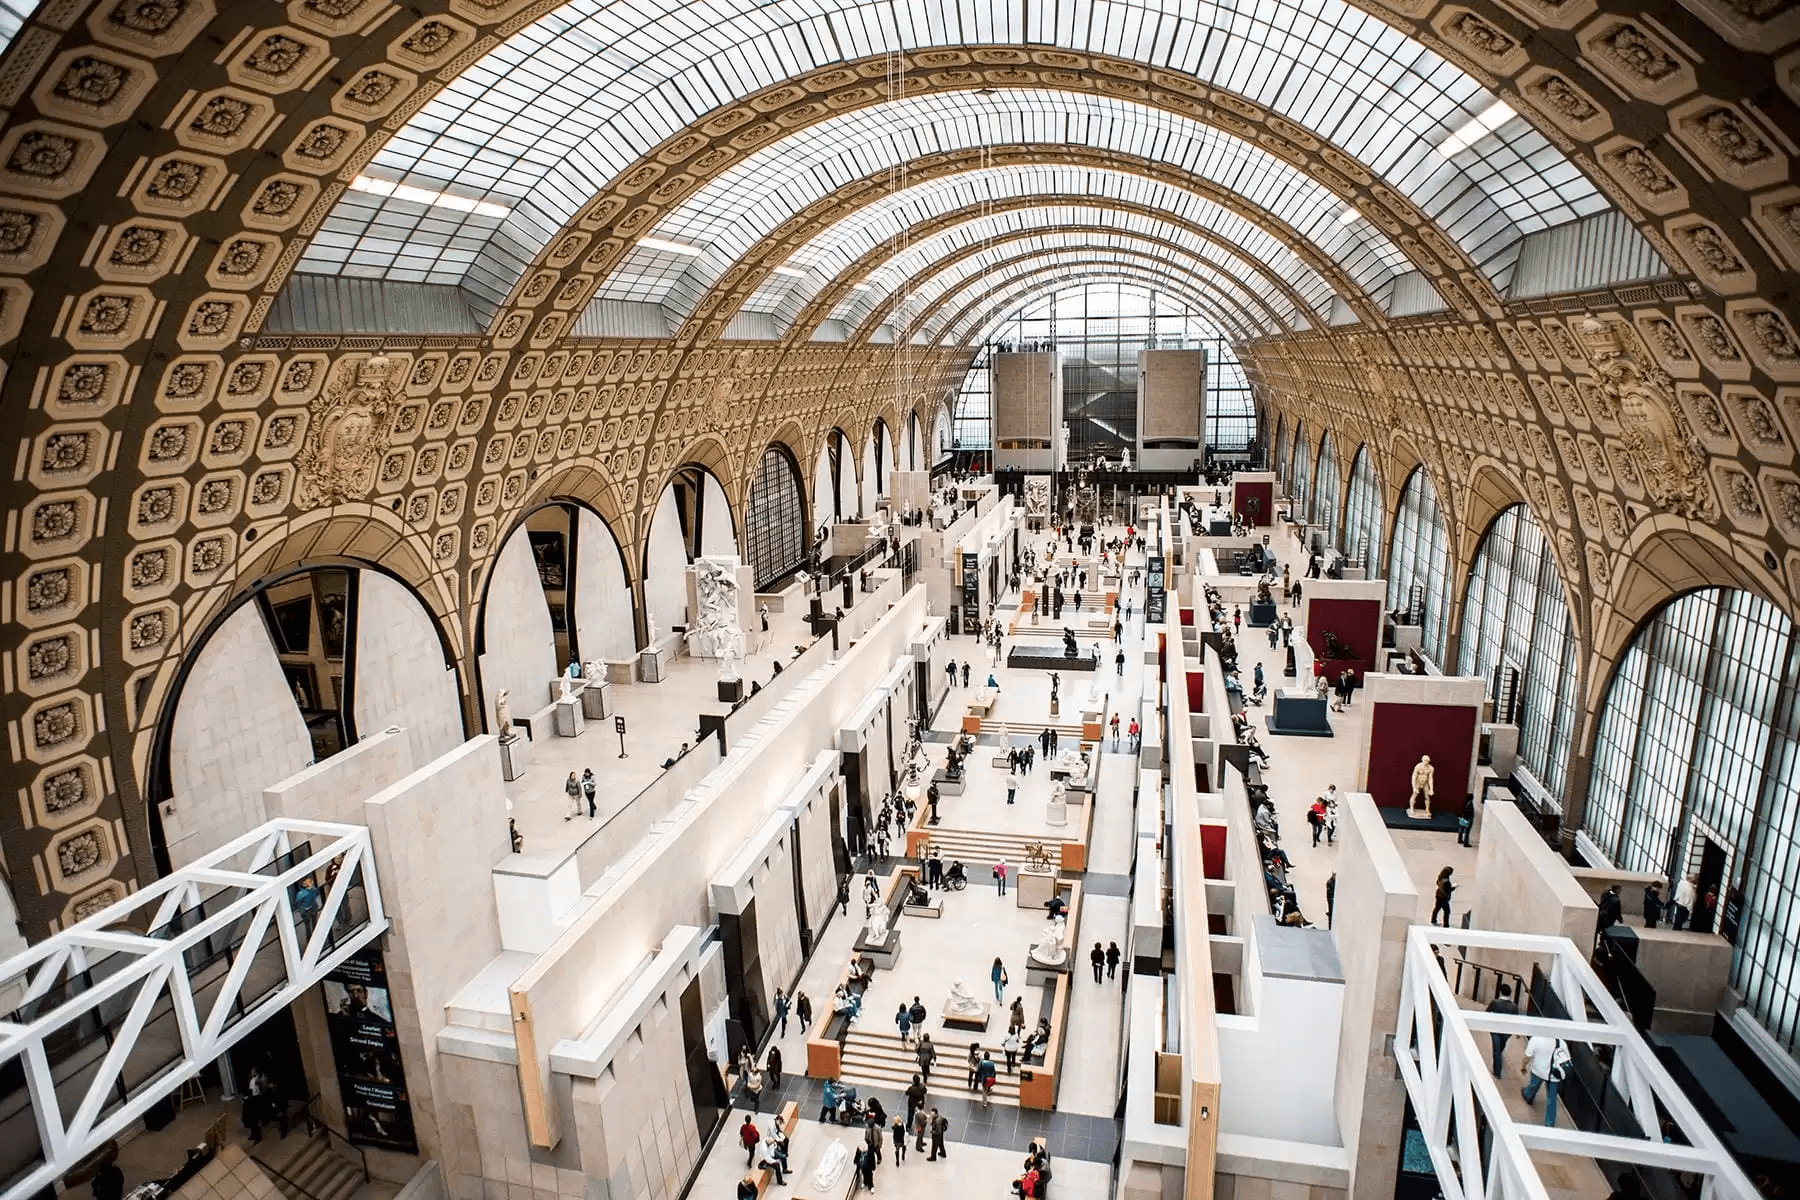 1 Explore the Musee D Orsay